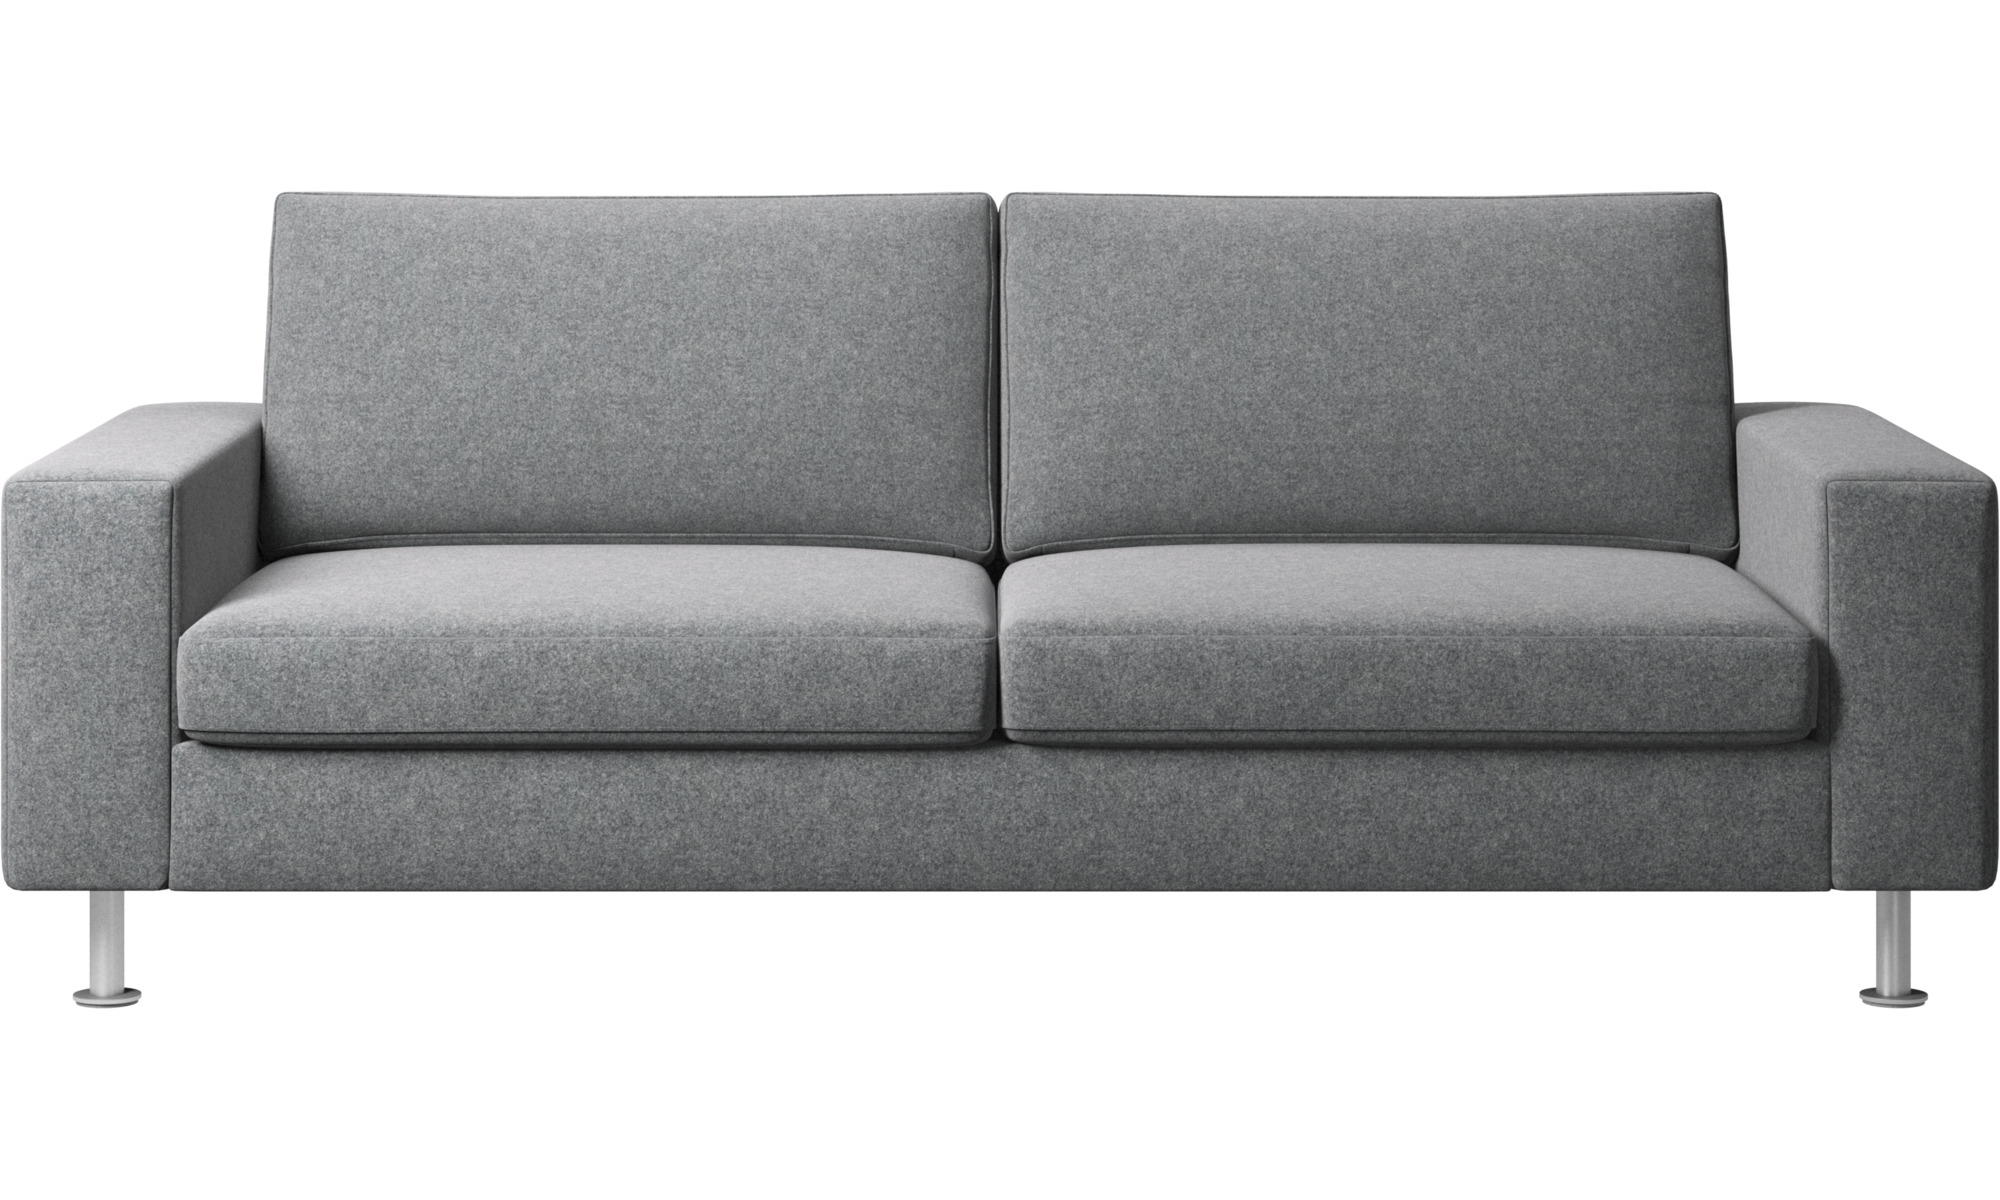 Sofa Beds Indivi Bed Boconcept